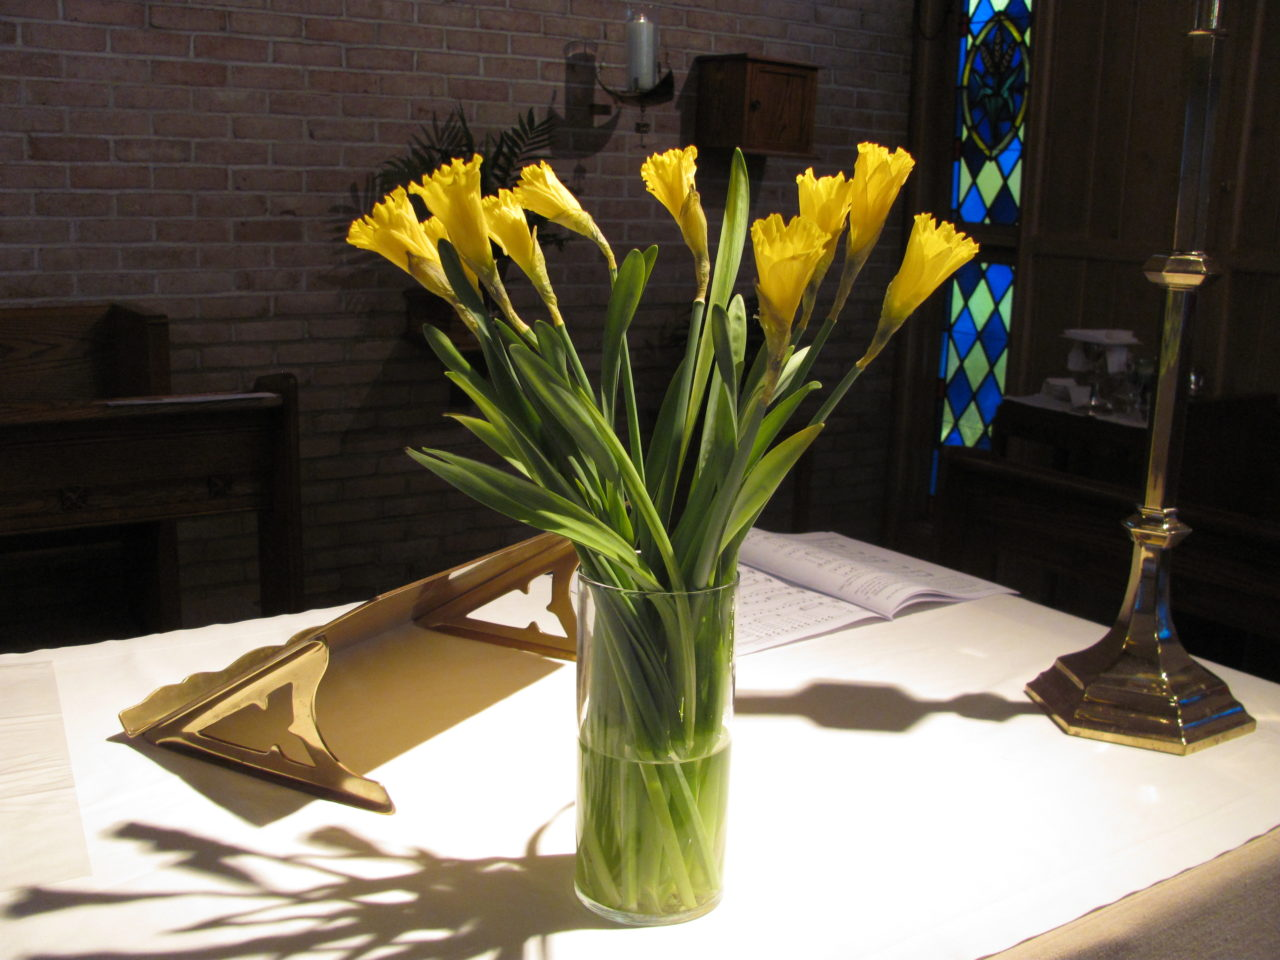 St. David's Day celebrated